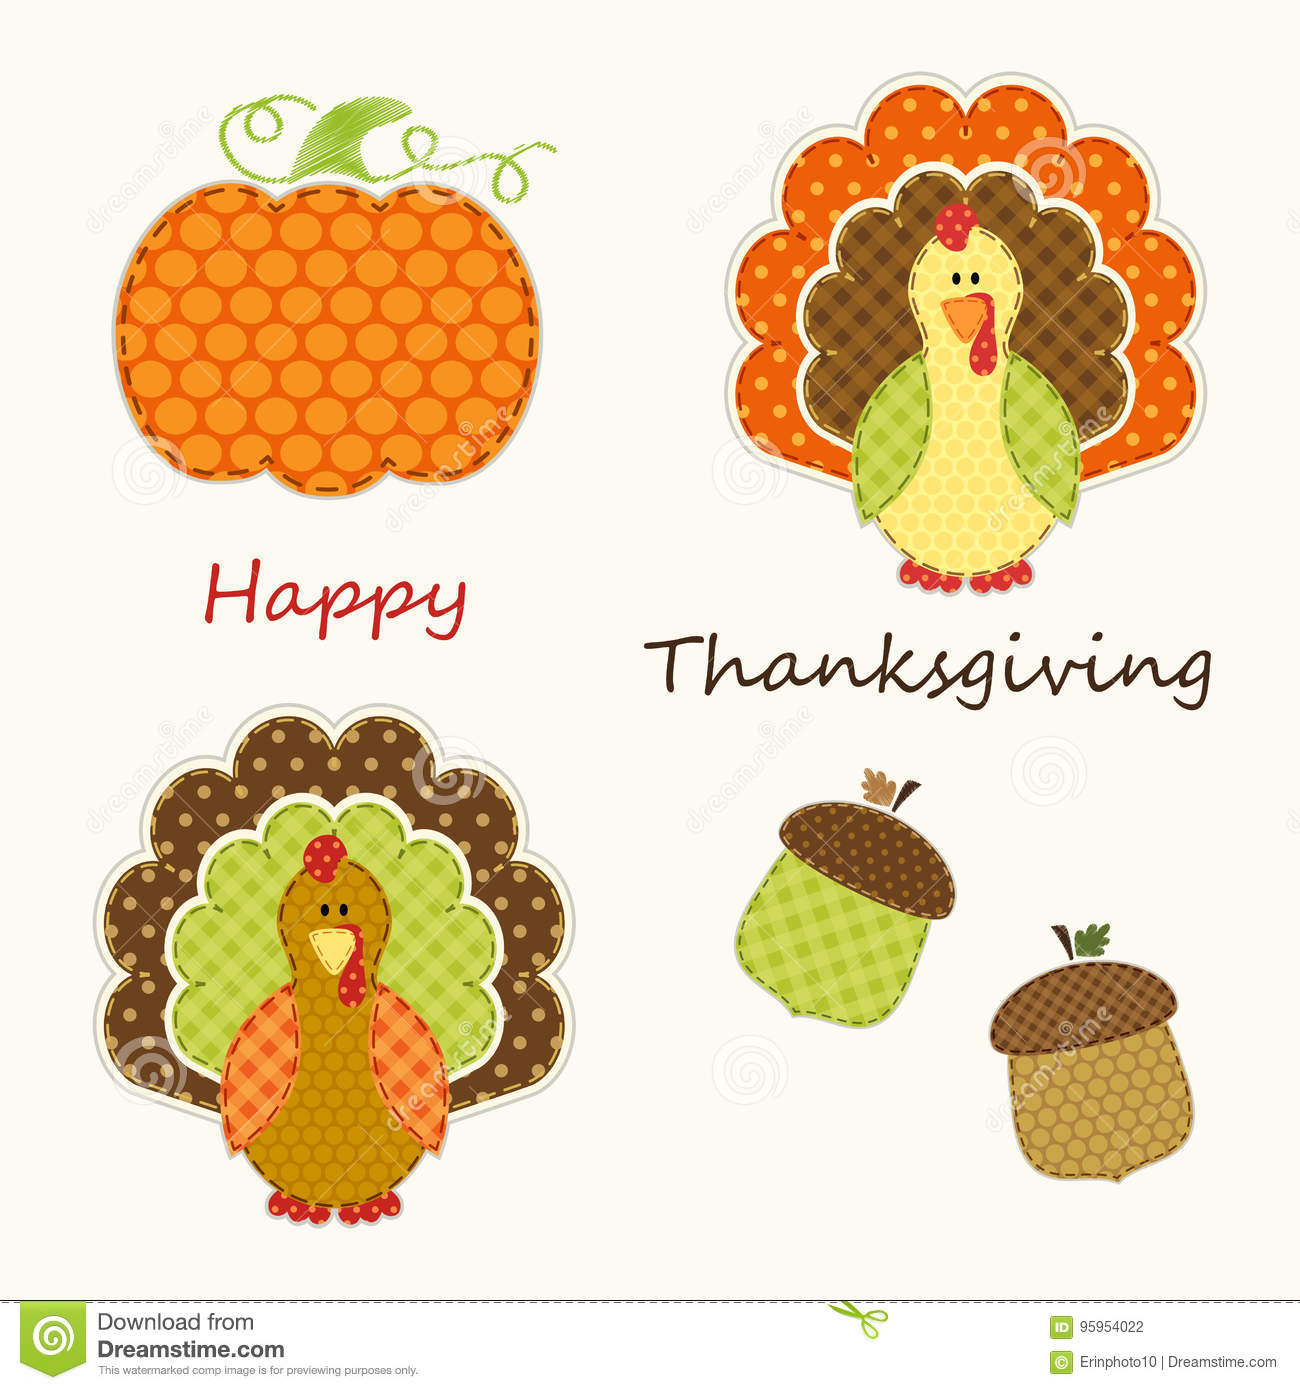 Cute thanksgiving elements as retro fabric applique in traditional cute thanksgiving elements as retro fabric applique in traditional colors m4hsunfo